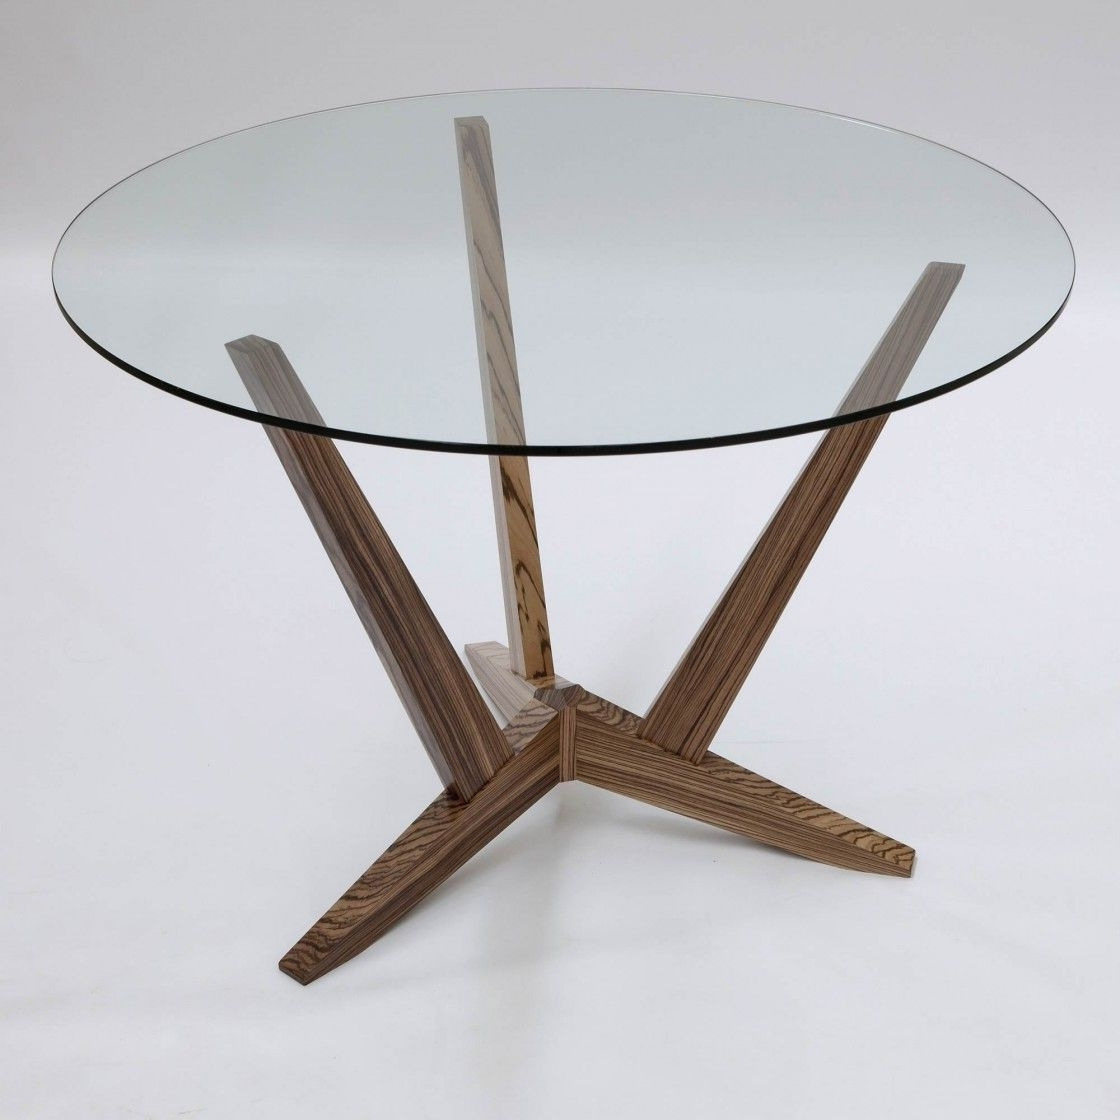 Best And Newest Simple Round Glass Dining Table With Walnut Wood Legs, Inexpensive Regarding Glass Dining Tables With Wooden Legs (View 24 of 25)